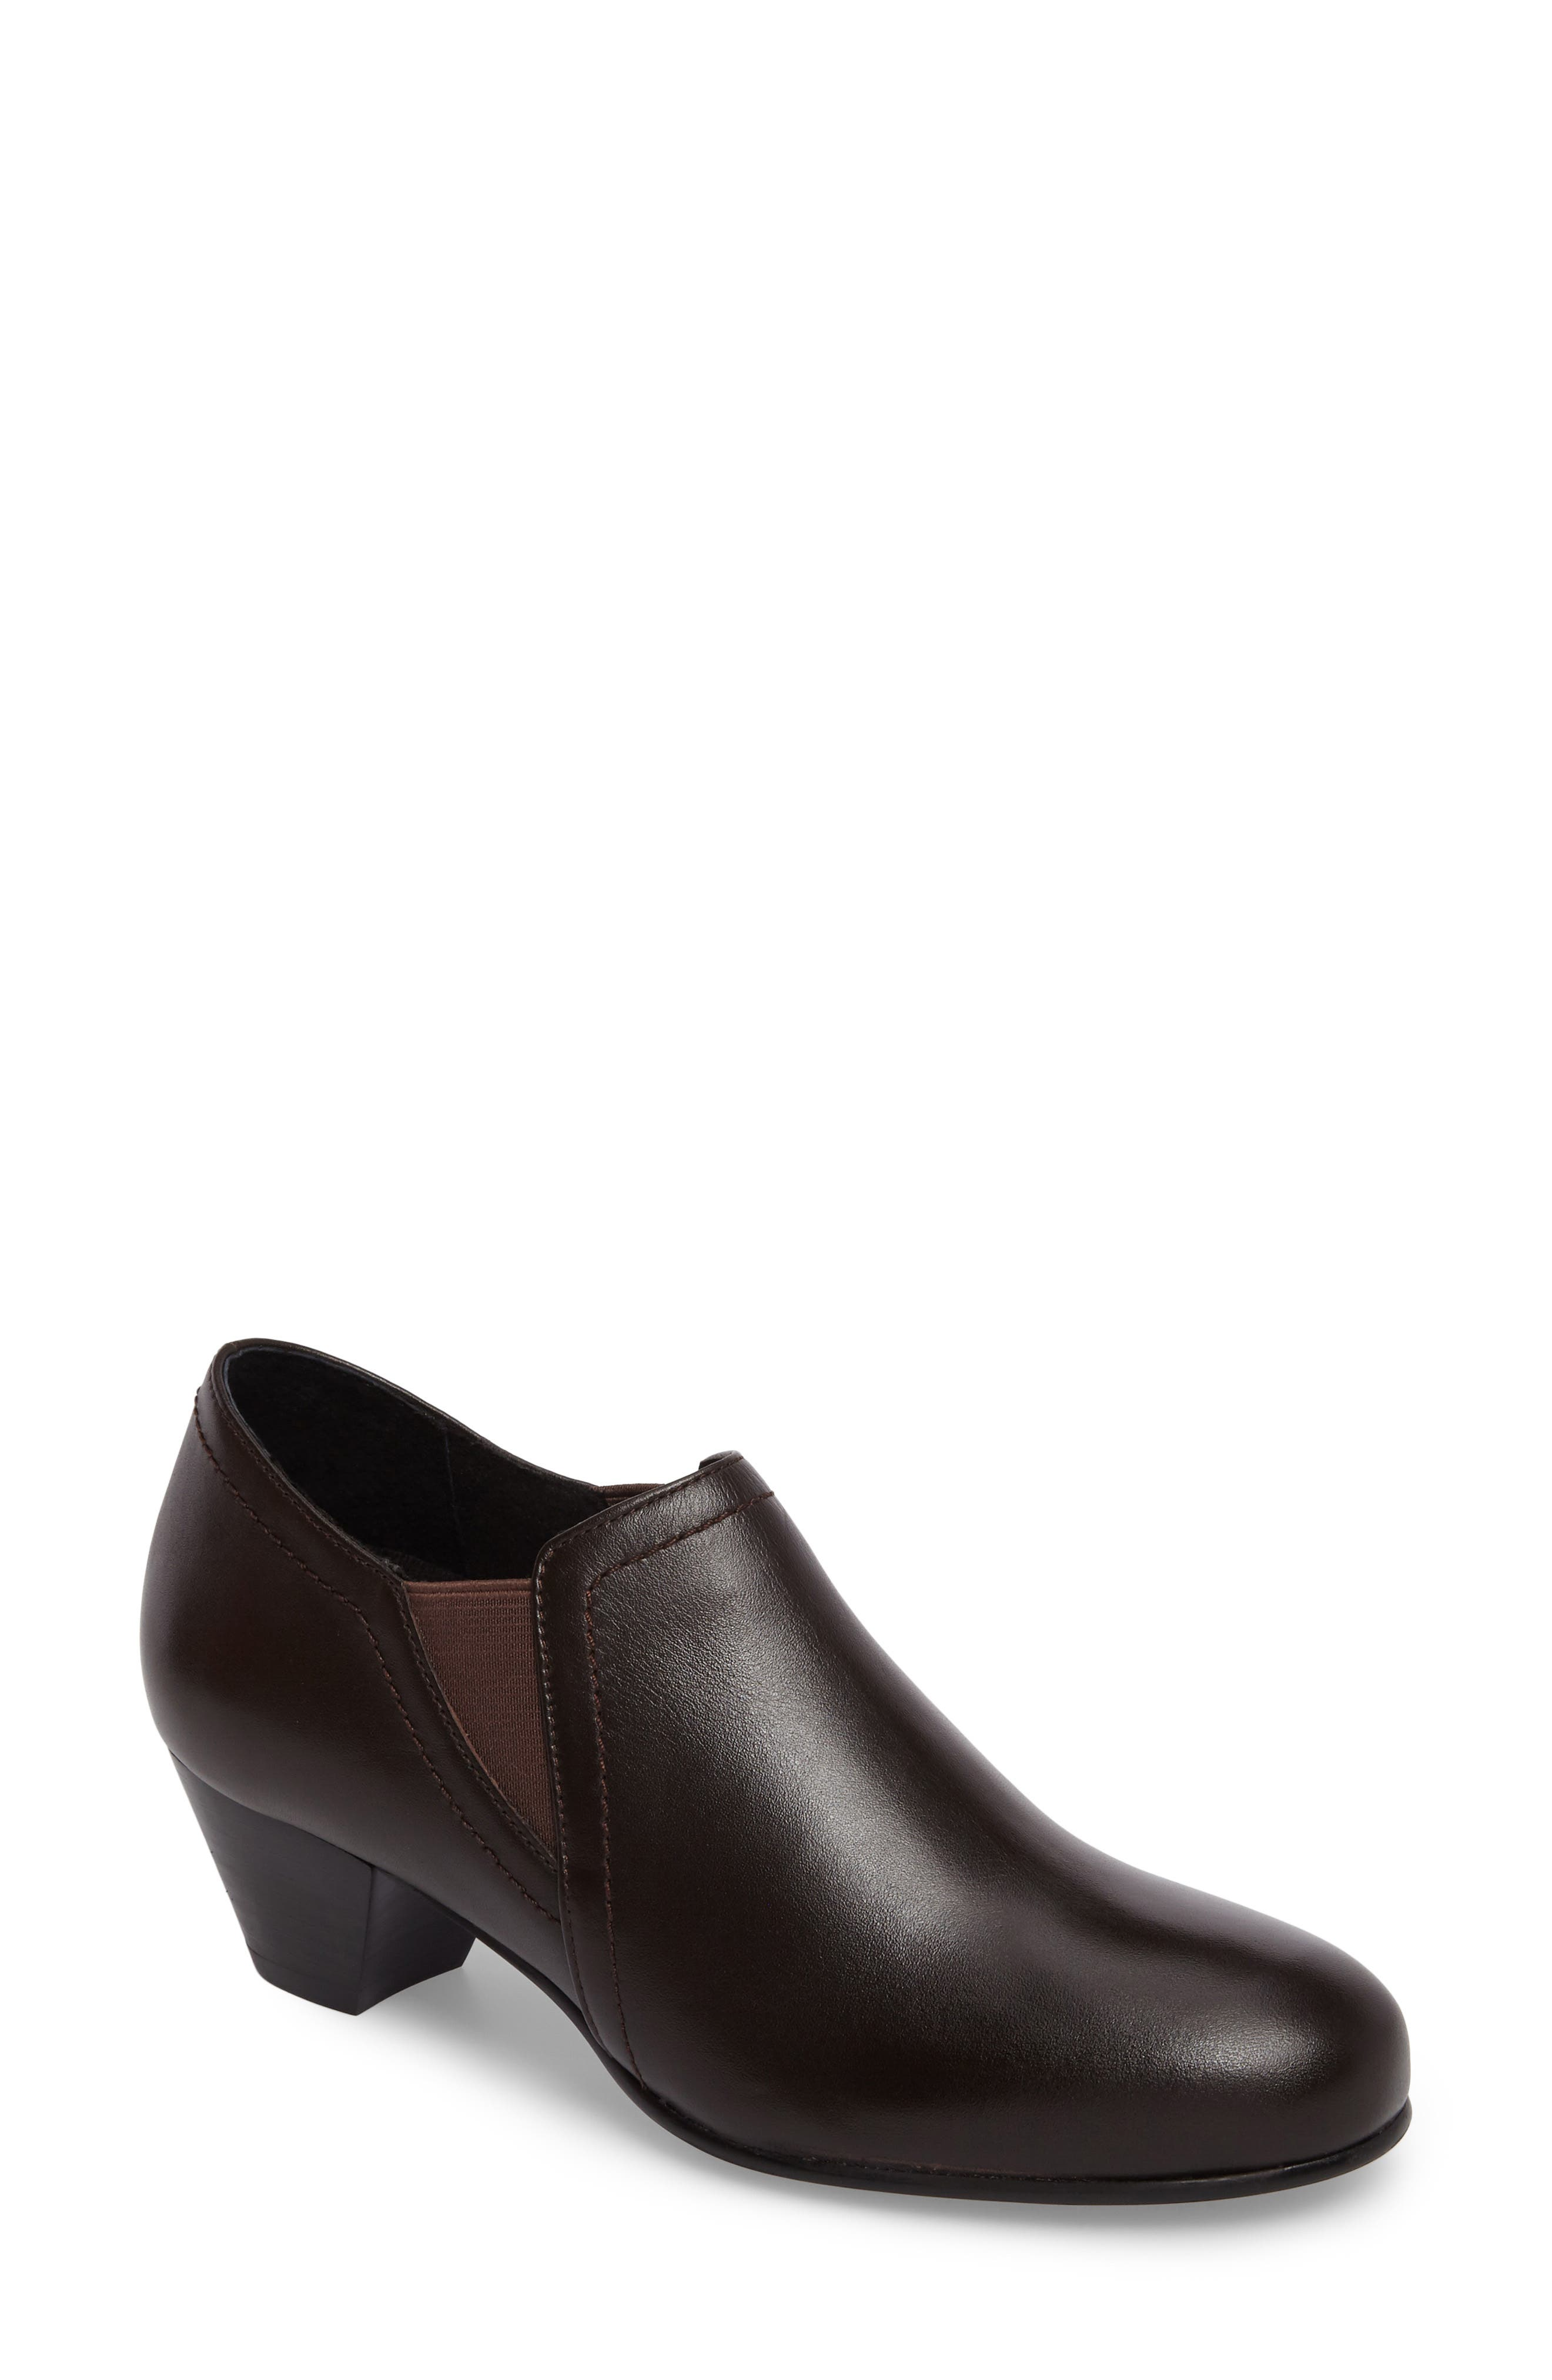 Maple Bootie,                         Main,                         color, BROWN LEATHER